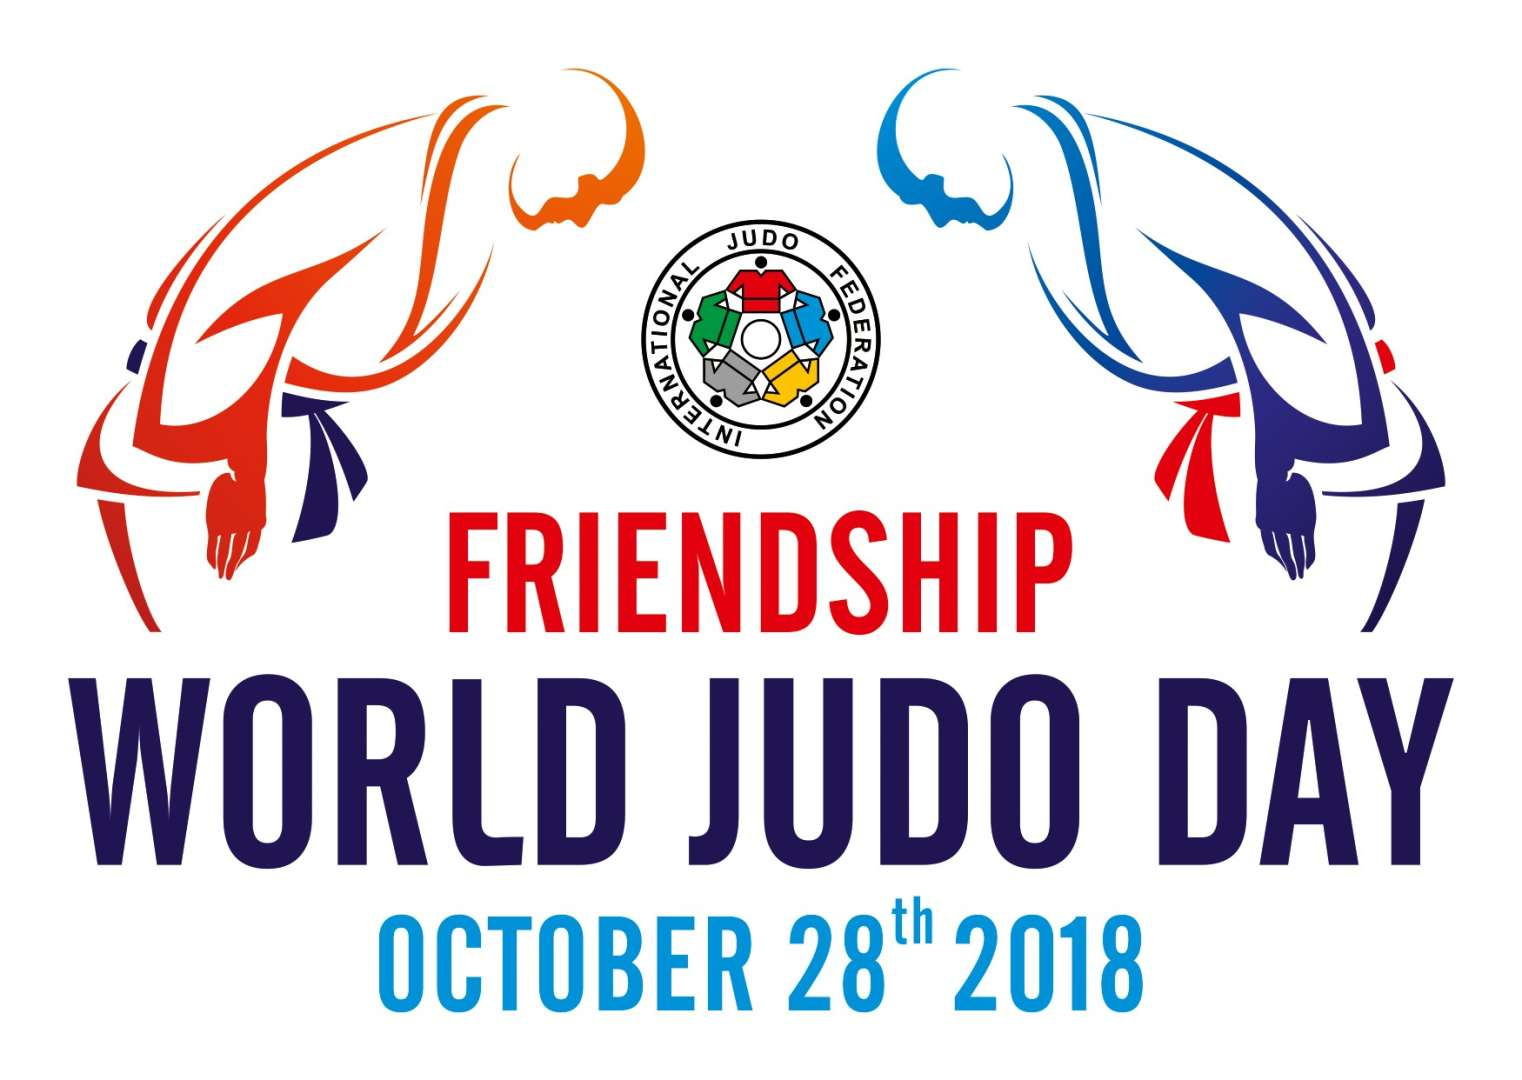 The #WorldJudoDay theme for 2018 has been selected / IJF org